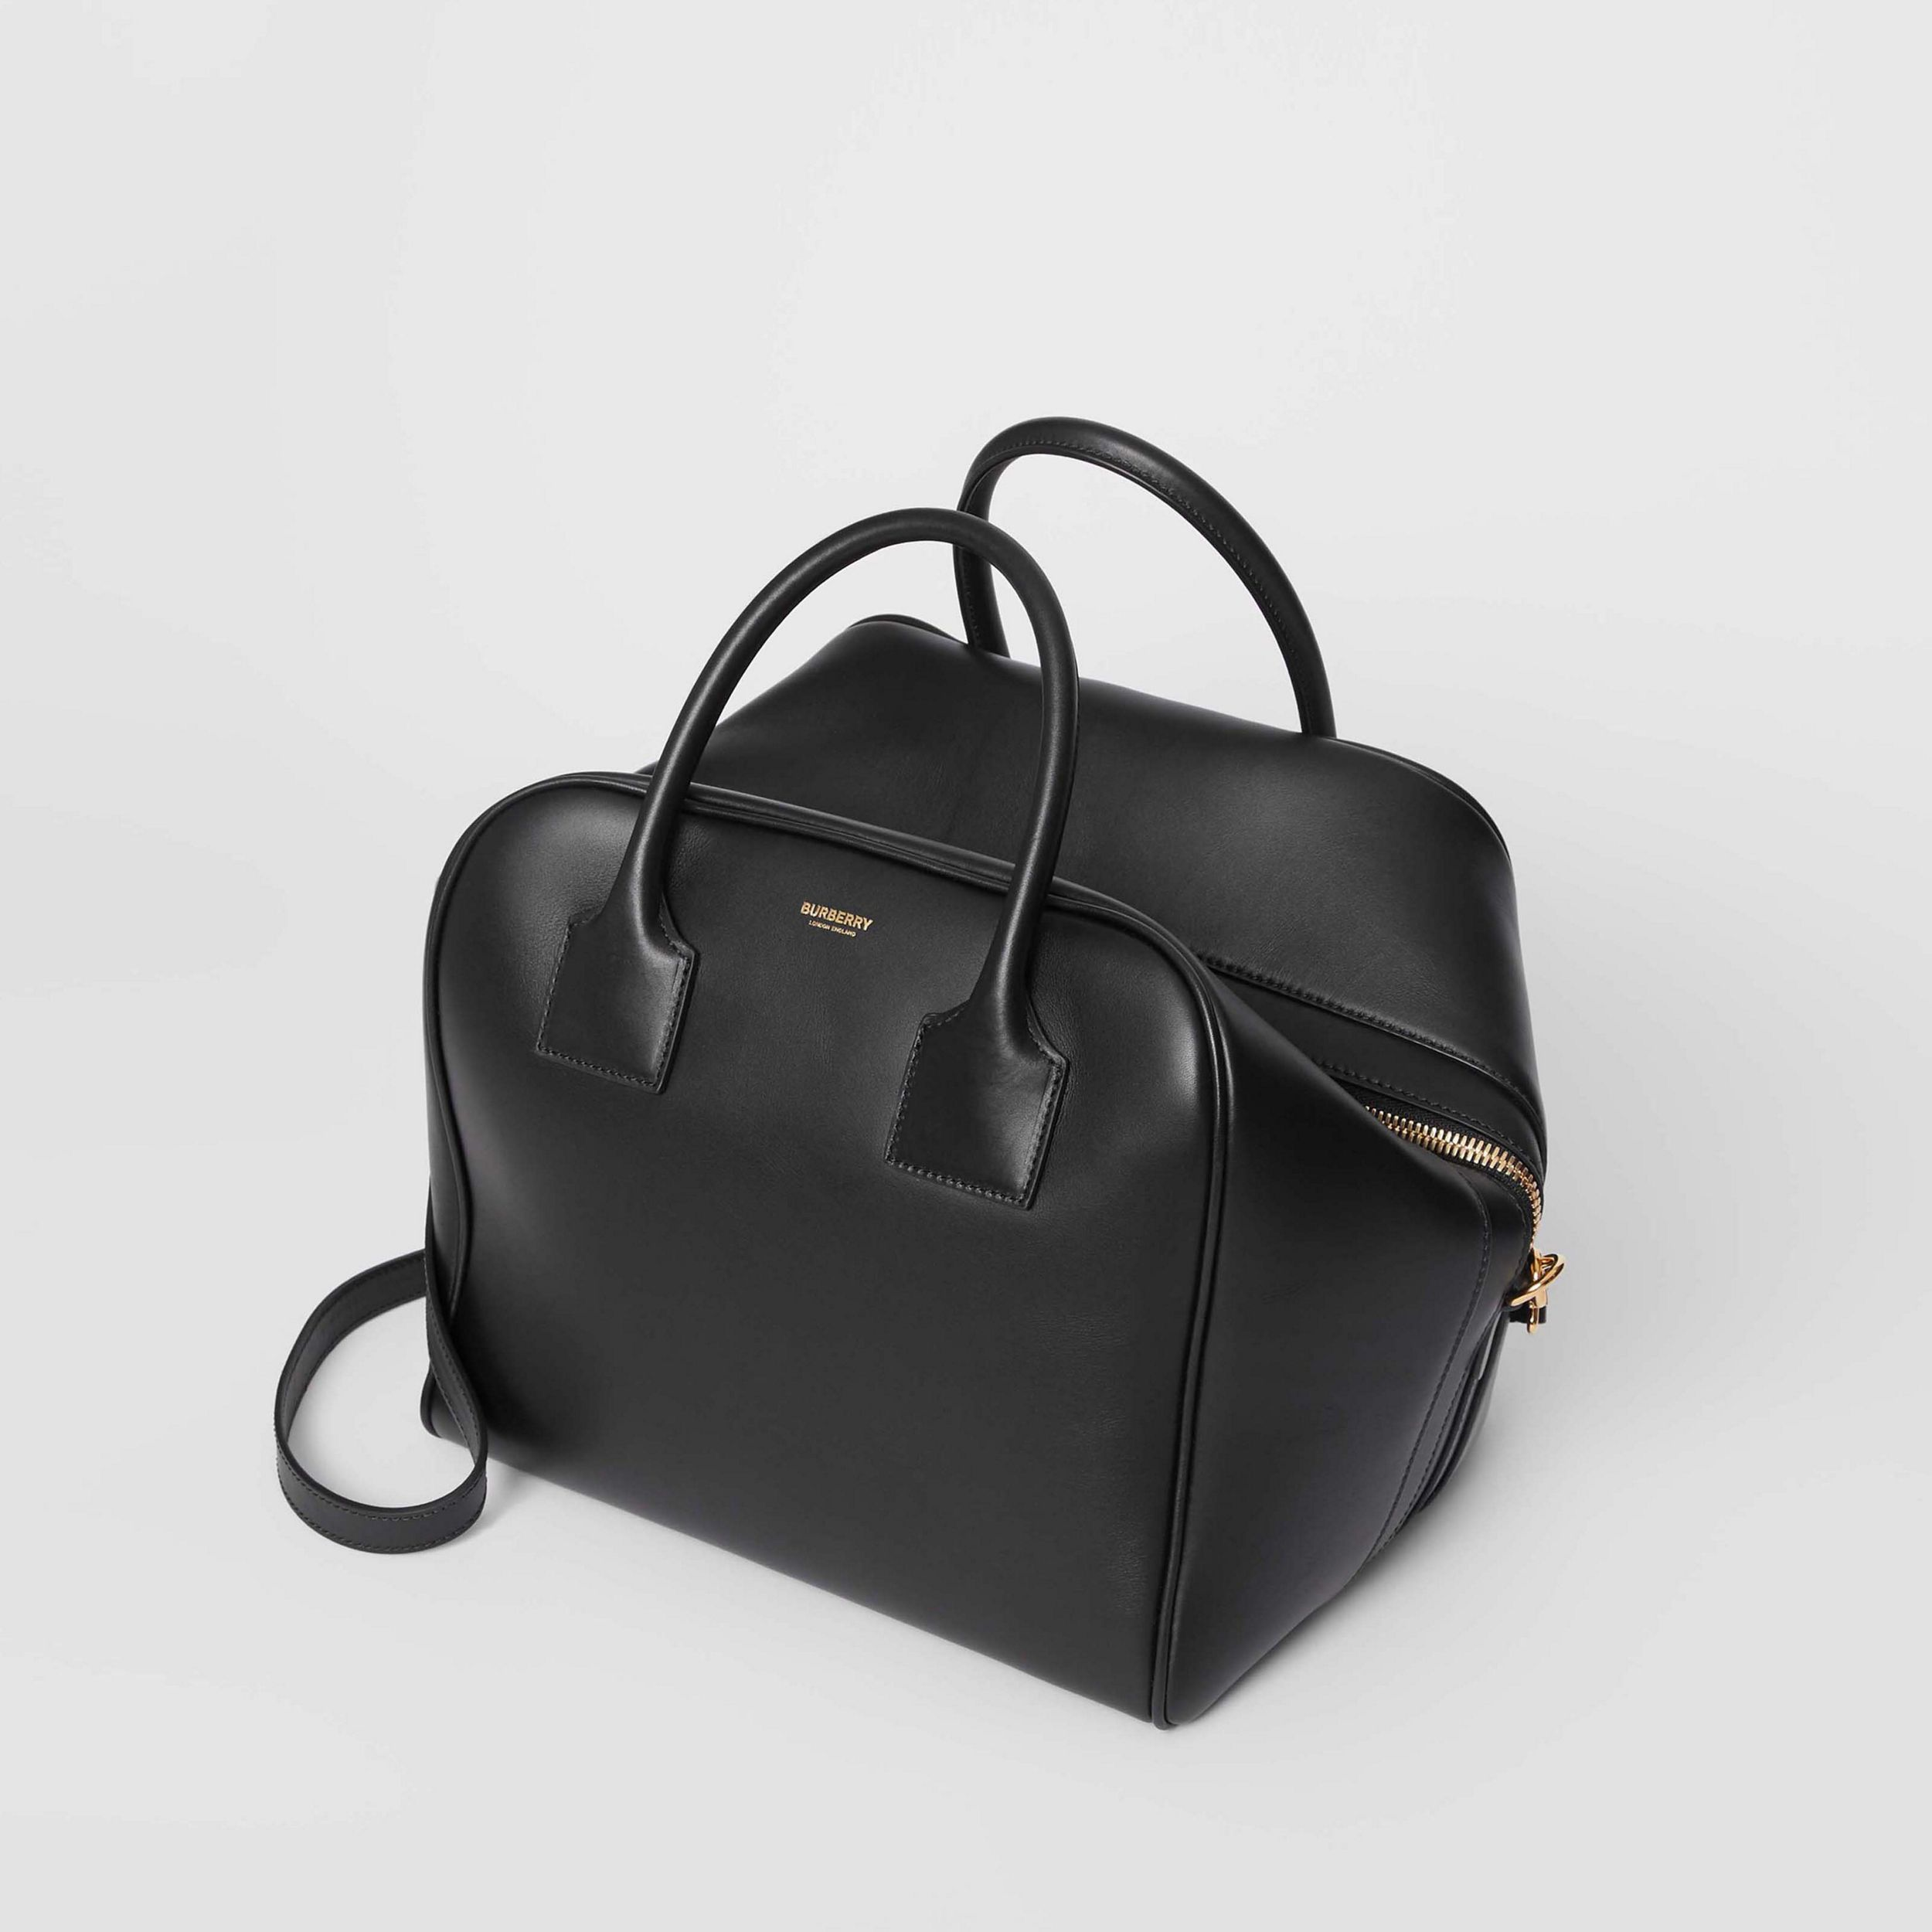 Medium Leather Cube Bag in Black - Women | Burberry - 4